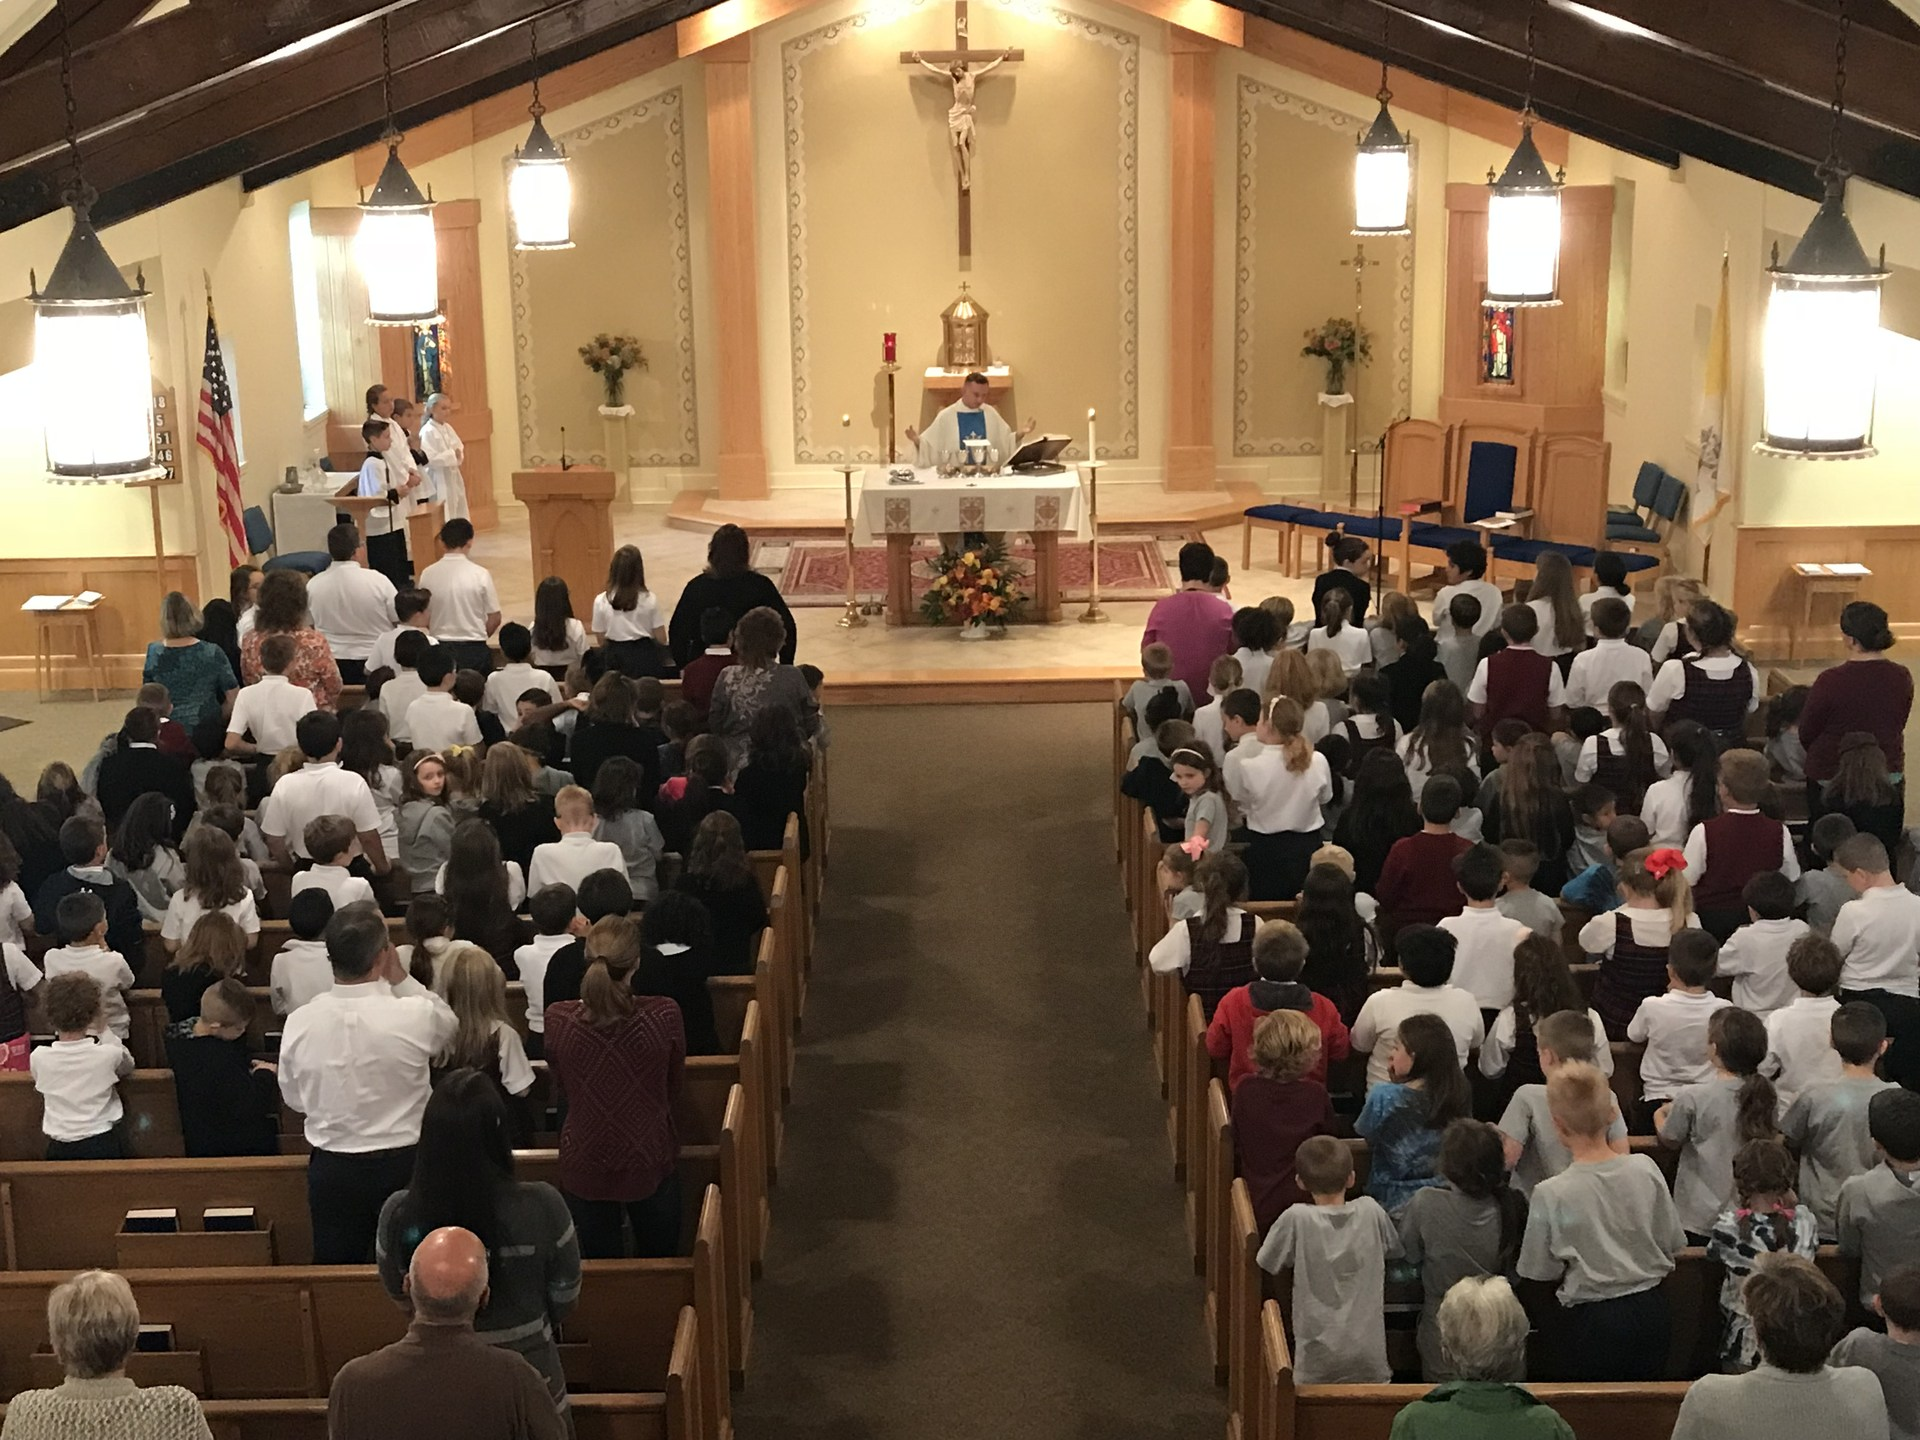 View of Reverend Brown mass taking place